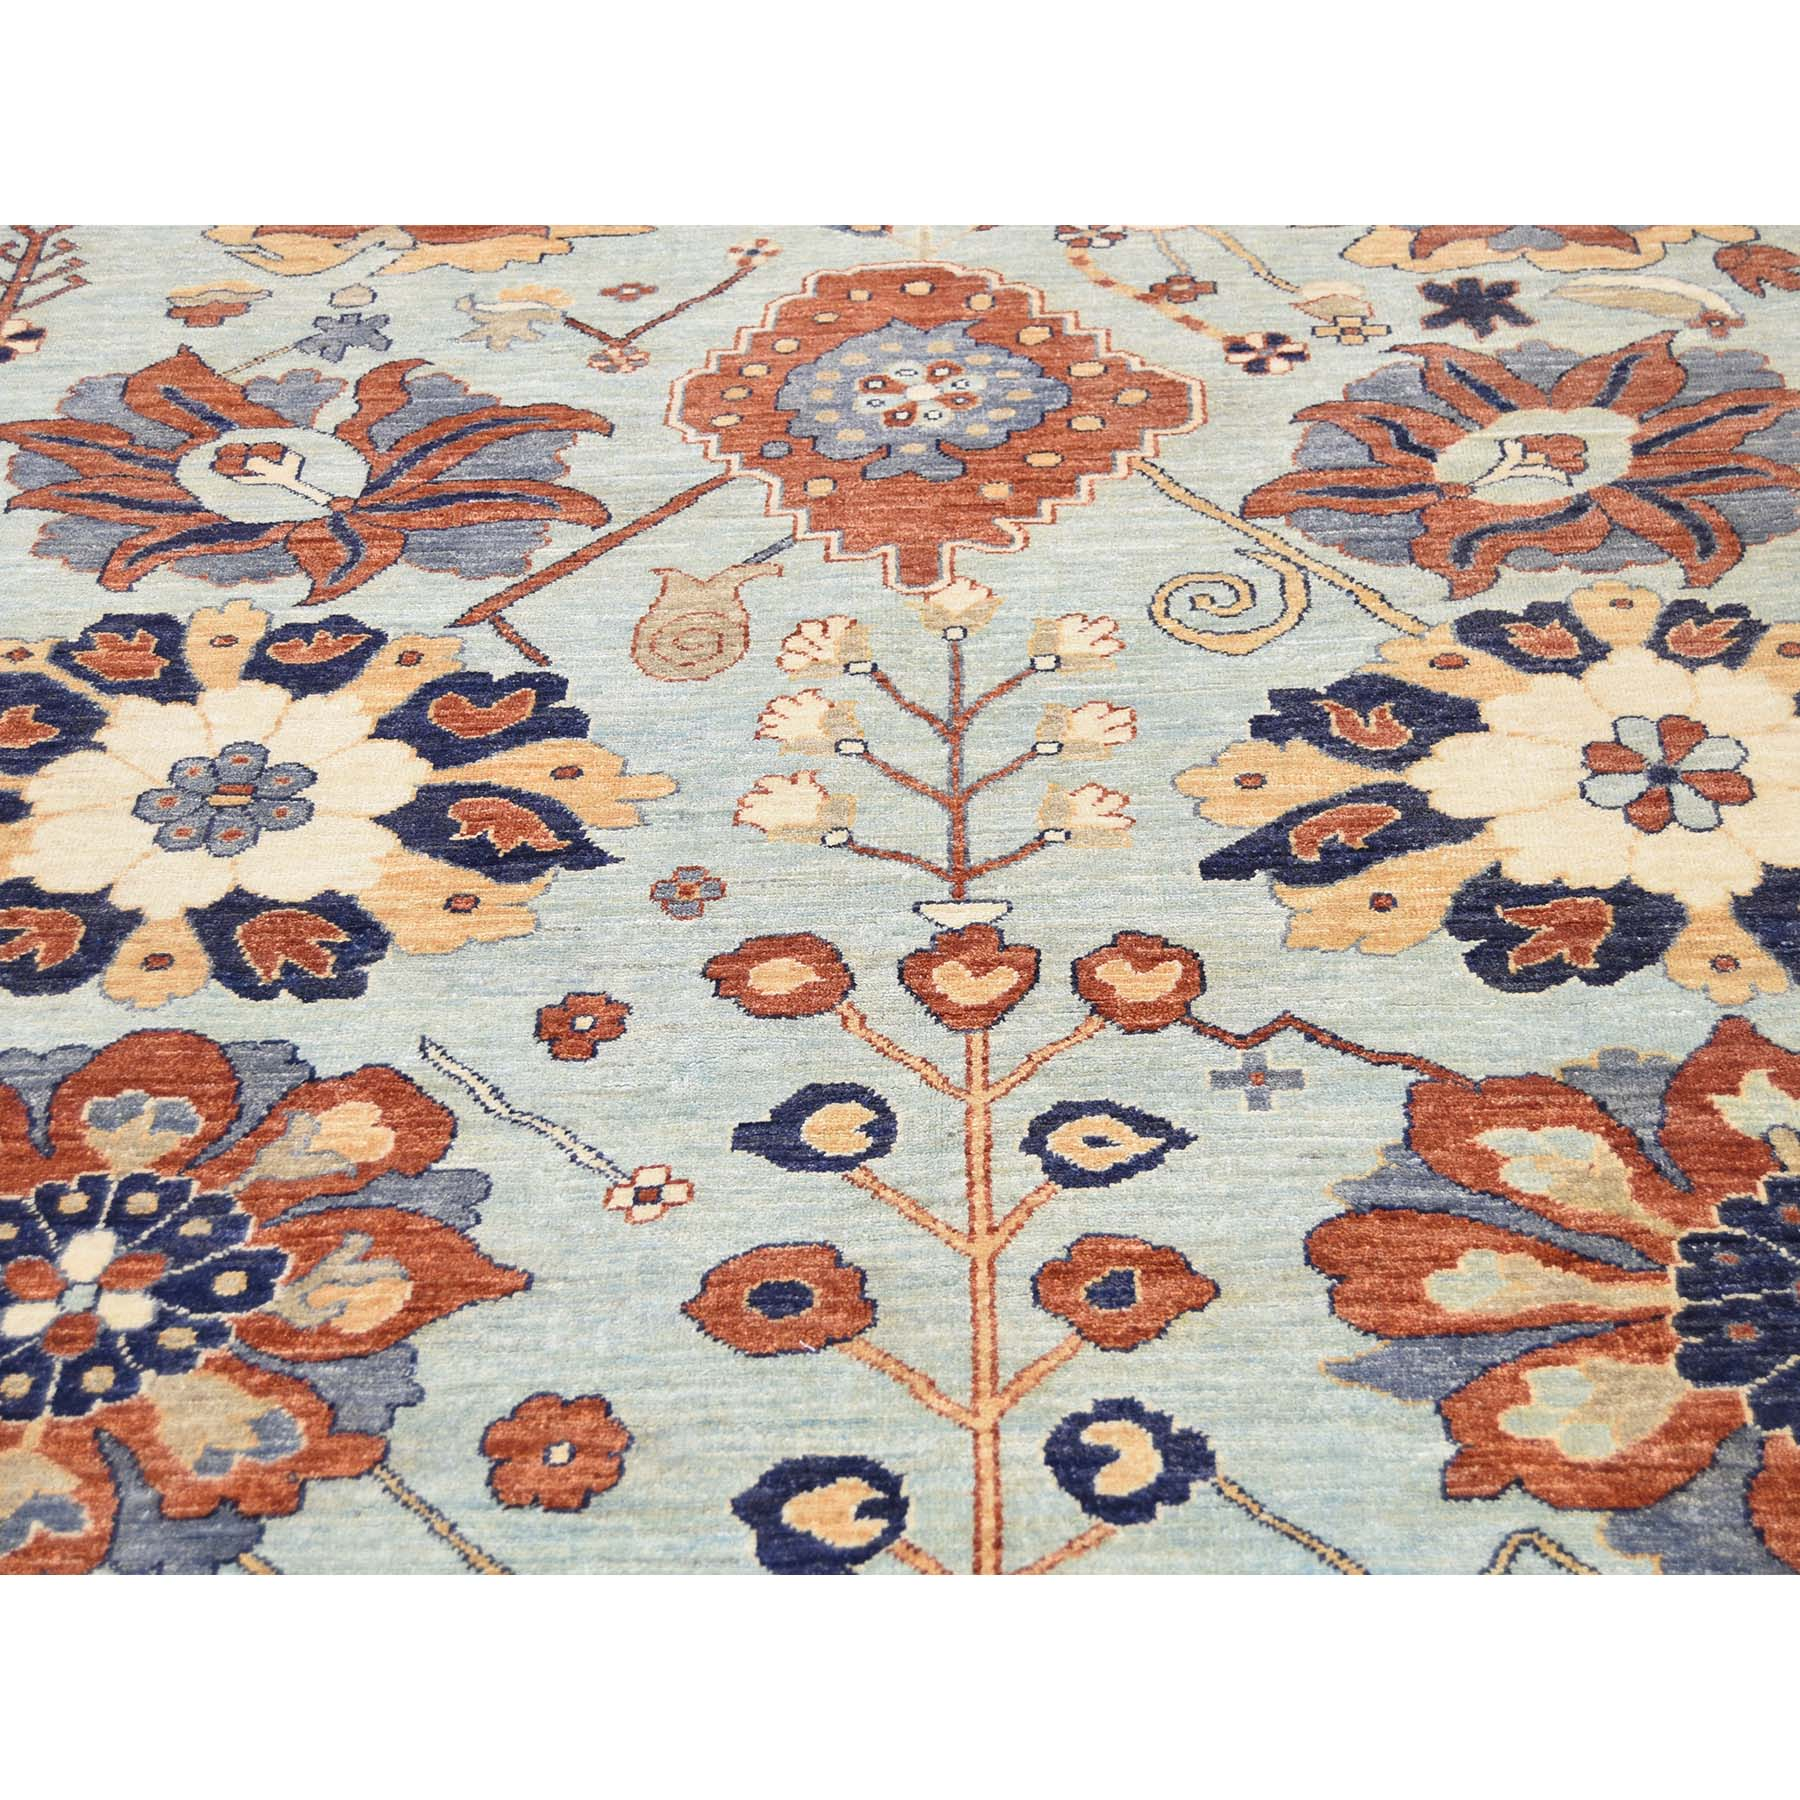 8'2''x10' Peshawar with Antiqued Sultanabad Design Hand-Knotted Oriental Rug